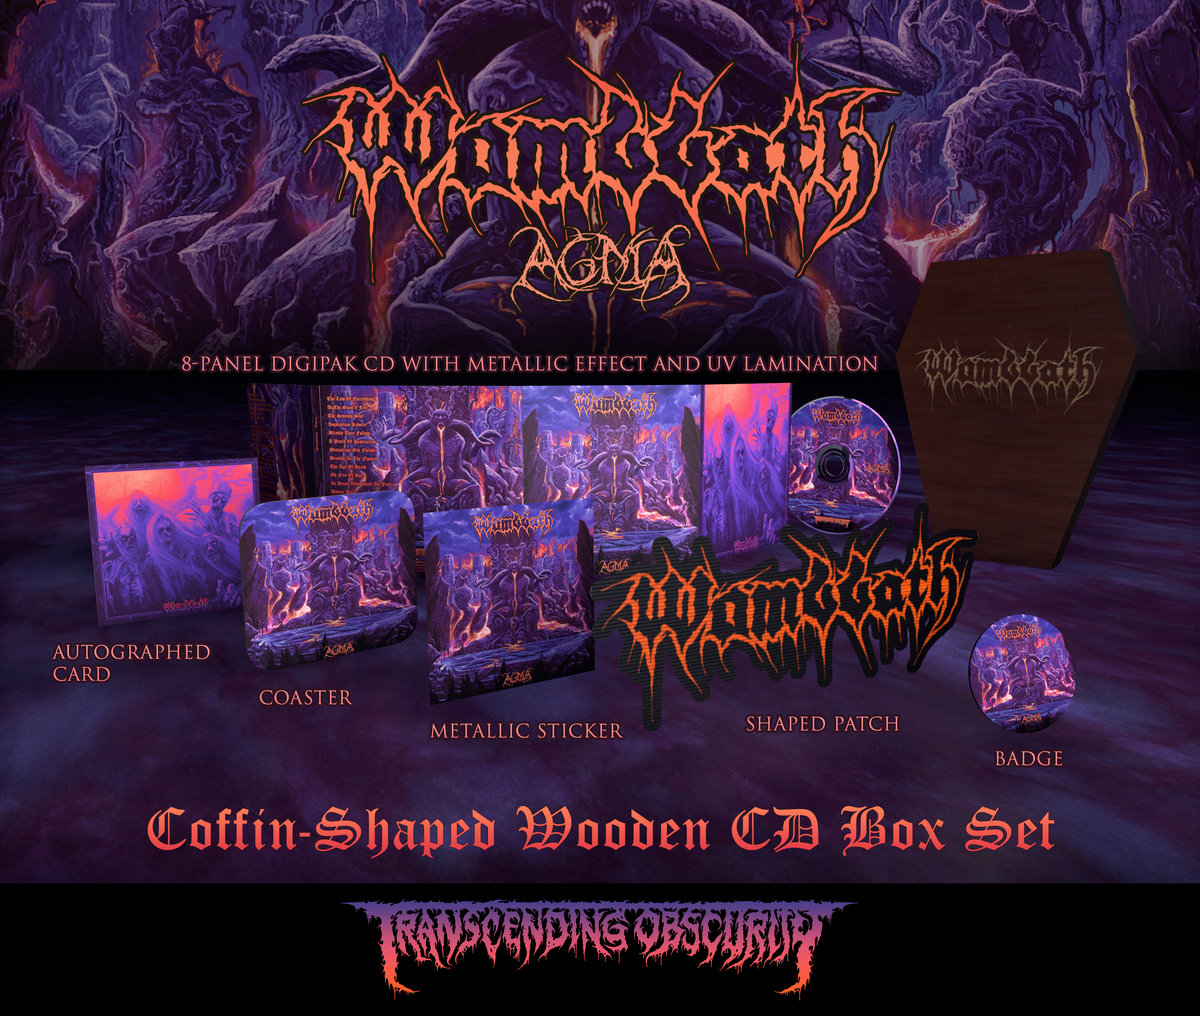 WOMBBATH - Agma Coffin-Shaped Wooden CD Box Set (Limited to 100 copies)